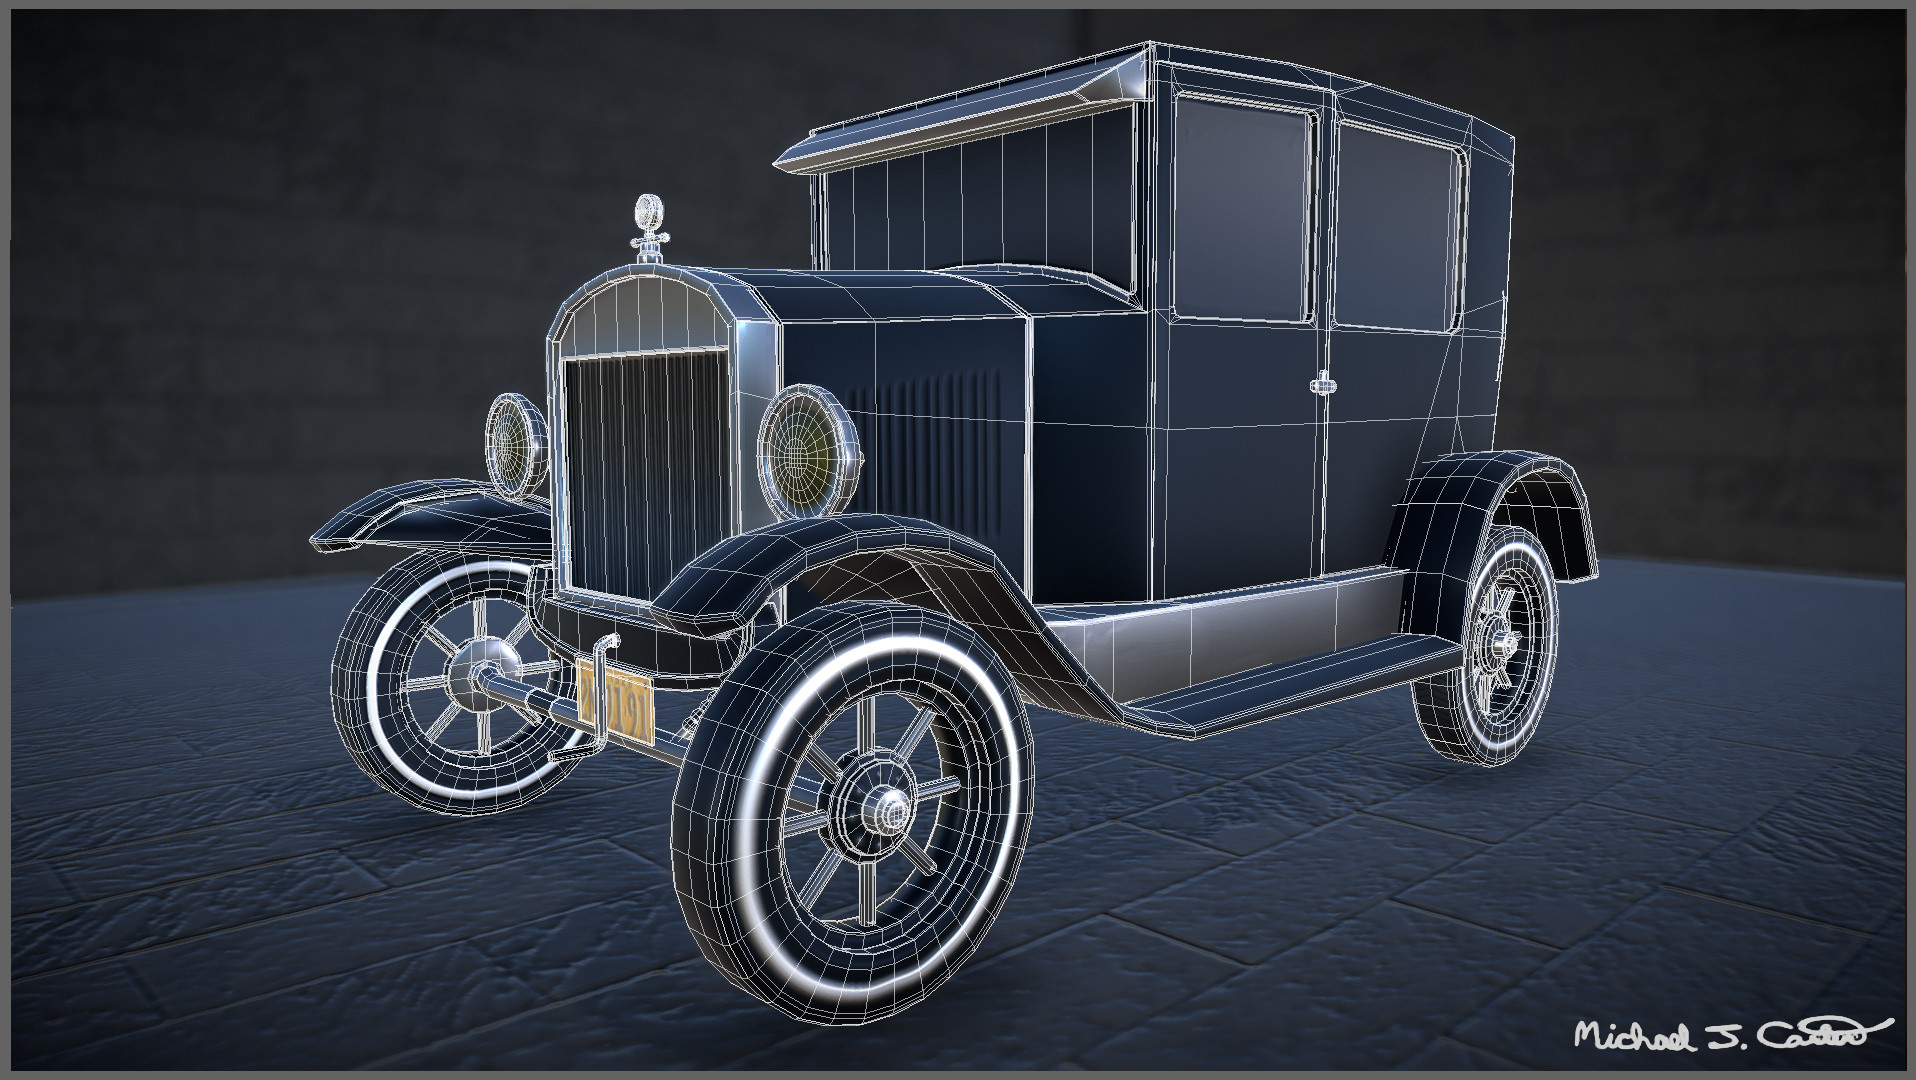 Michael jake carter mcarter 1926 model t wireframe view